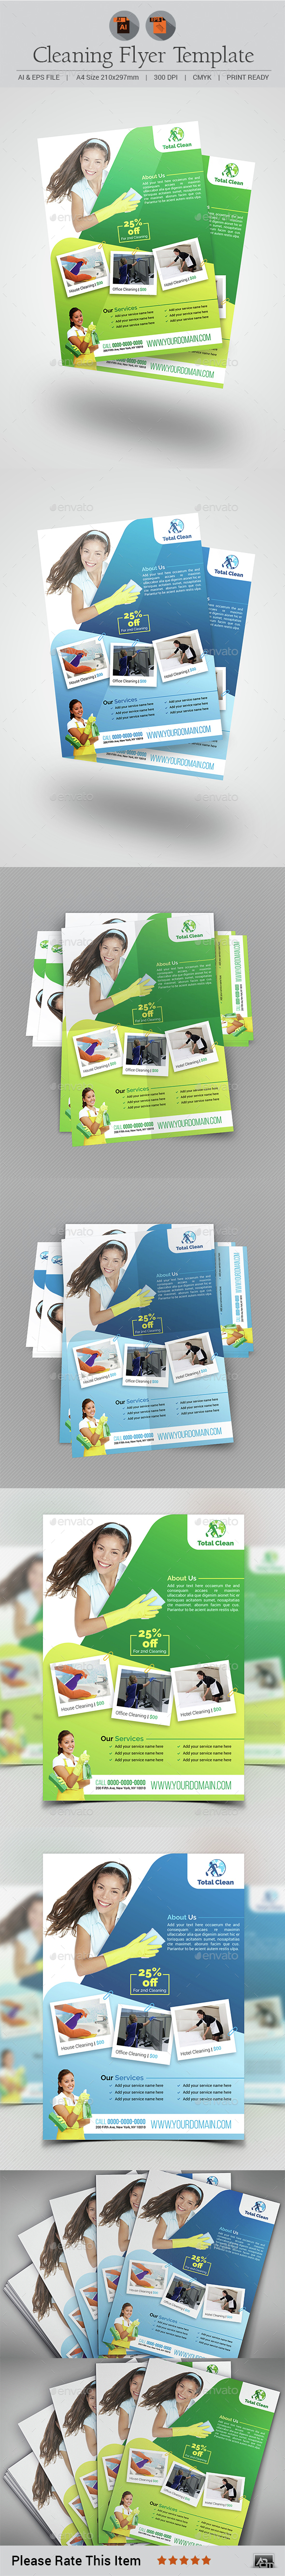 Cleaning Flyer Template V4 - Commerce Flyers